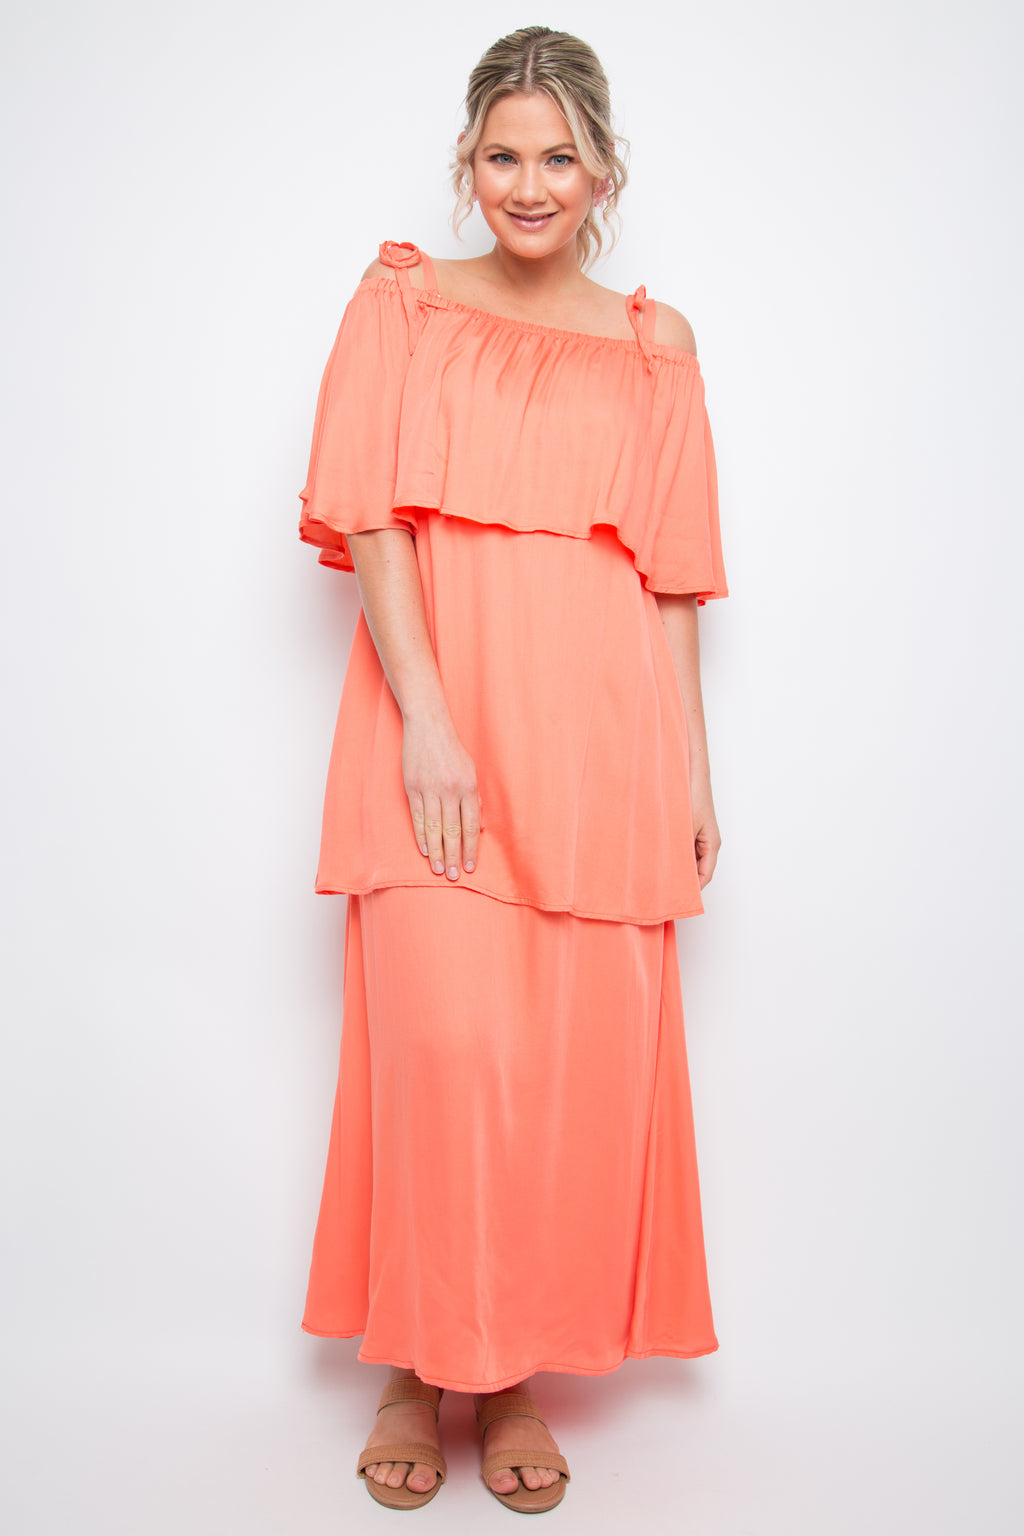 Maxi Layer Frill Dress in Coral